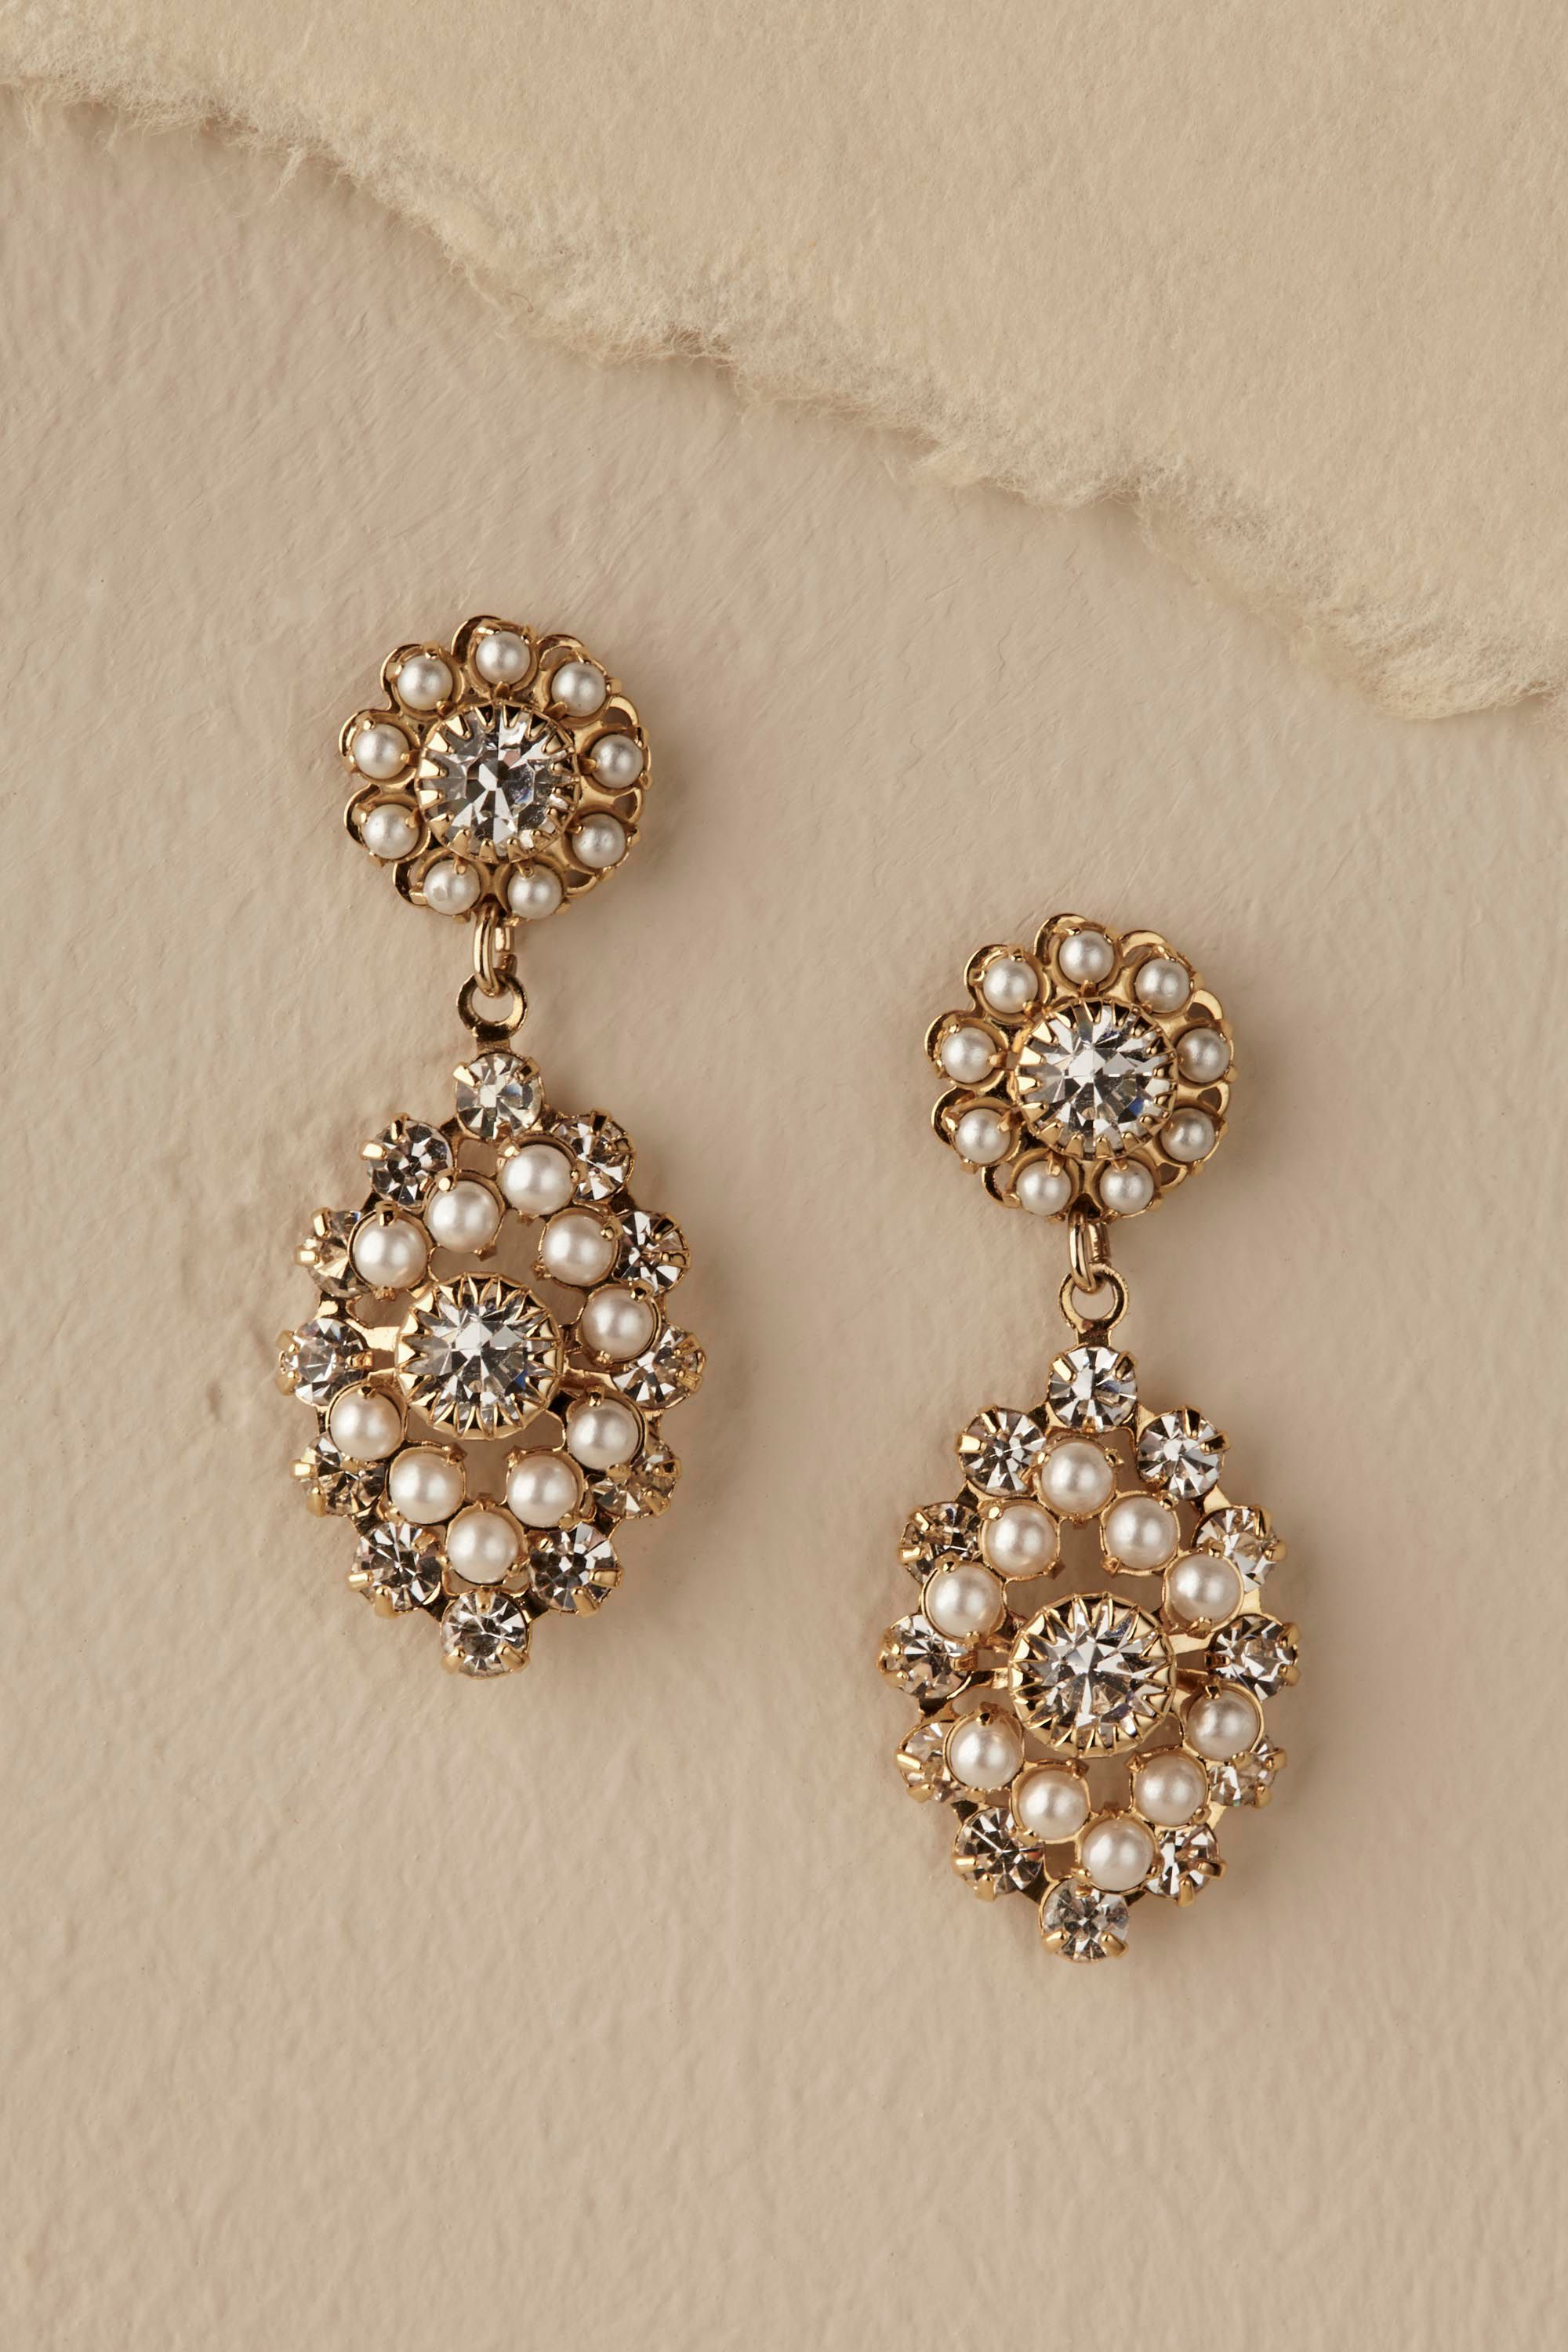 Courtship Earrings